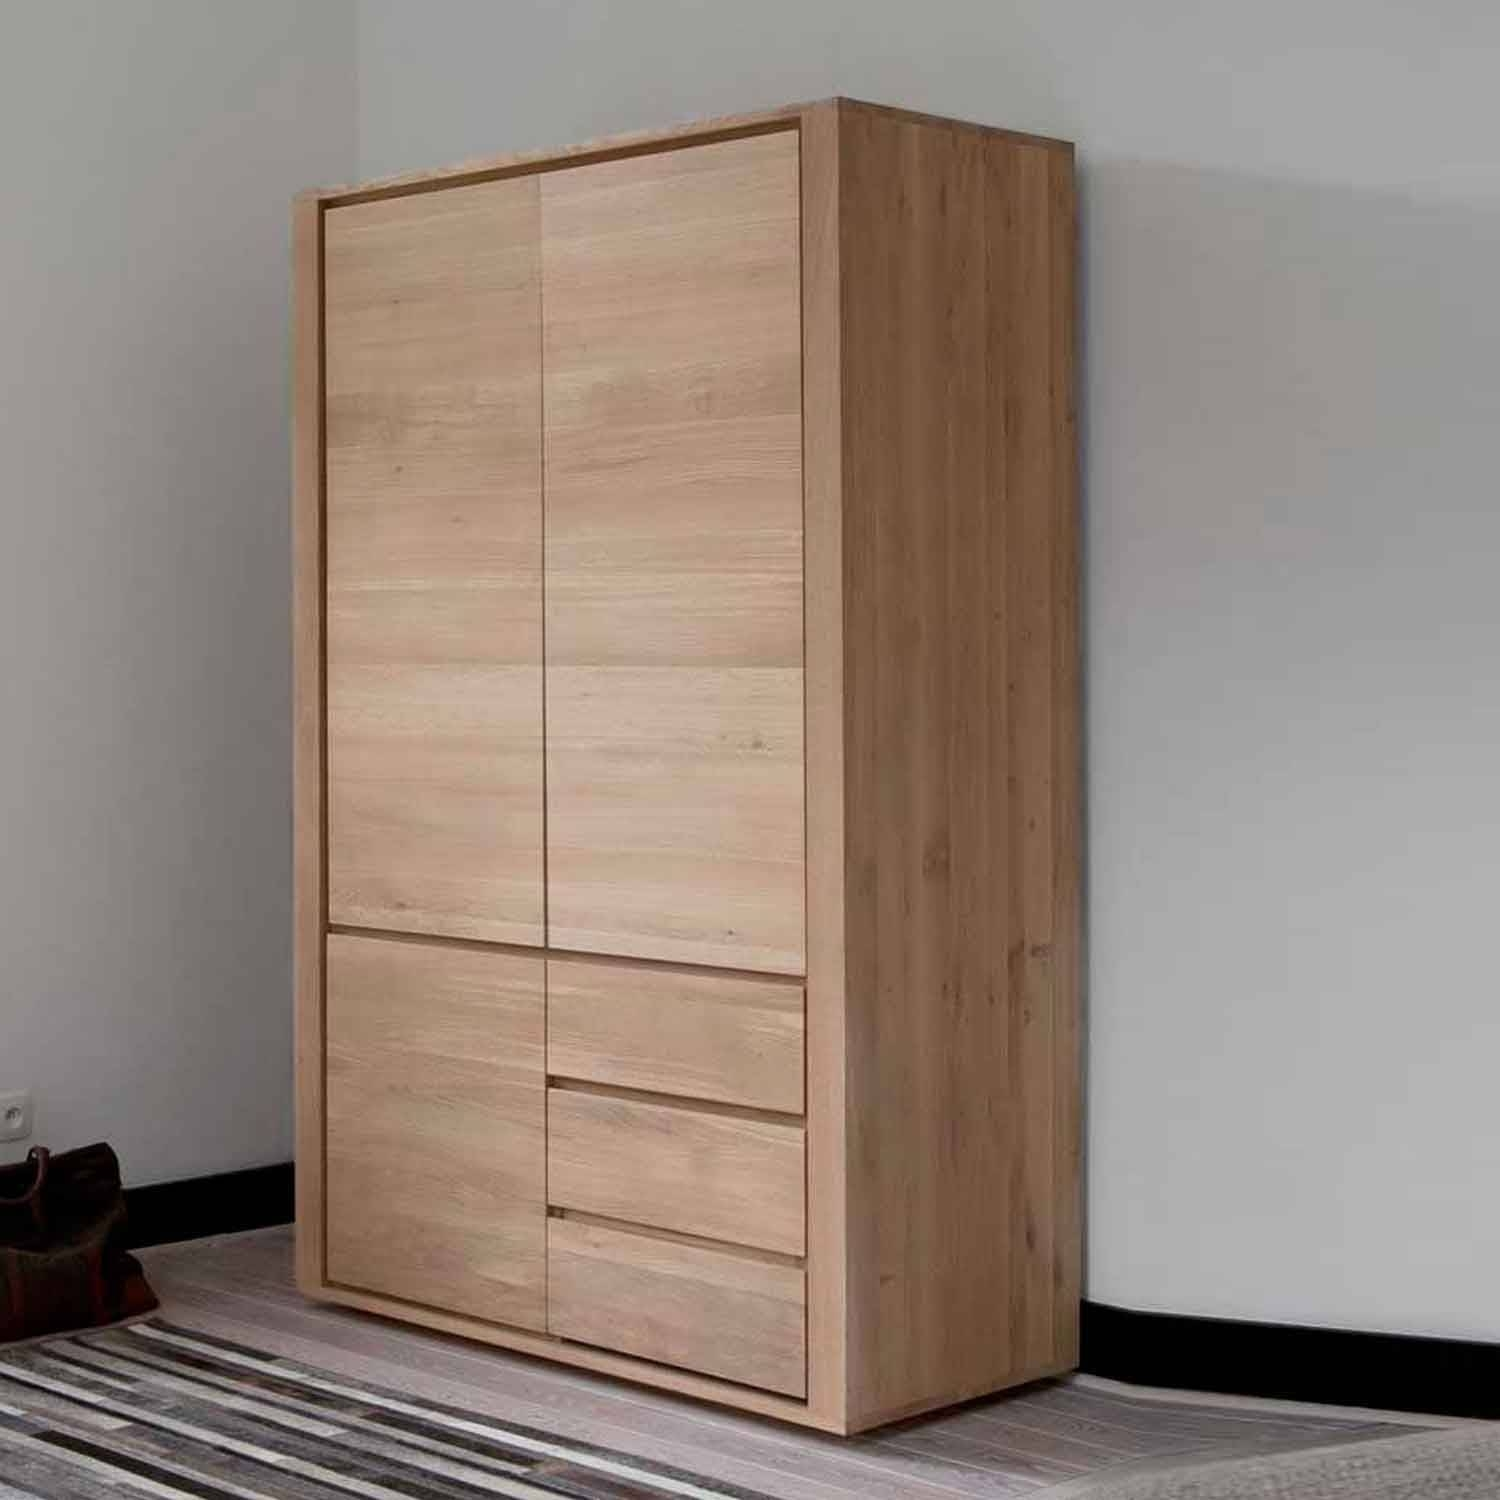 Wooden Bedroom Wardrobe | Solid Wood Wardrobeadventures In with Oak Wardrobes (Image 15 of 15)